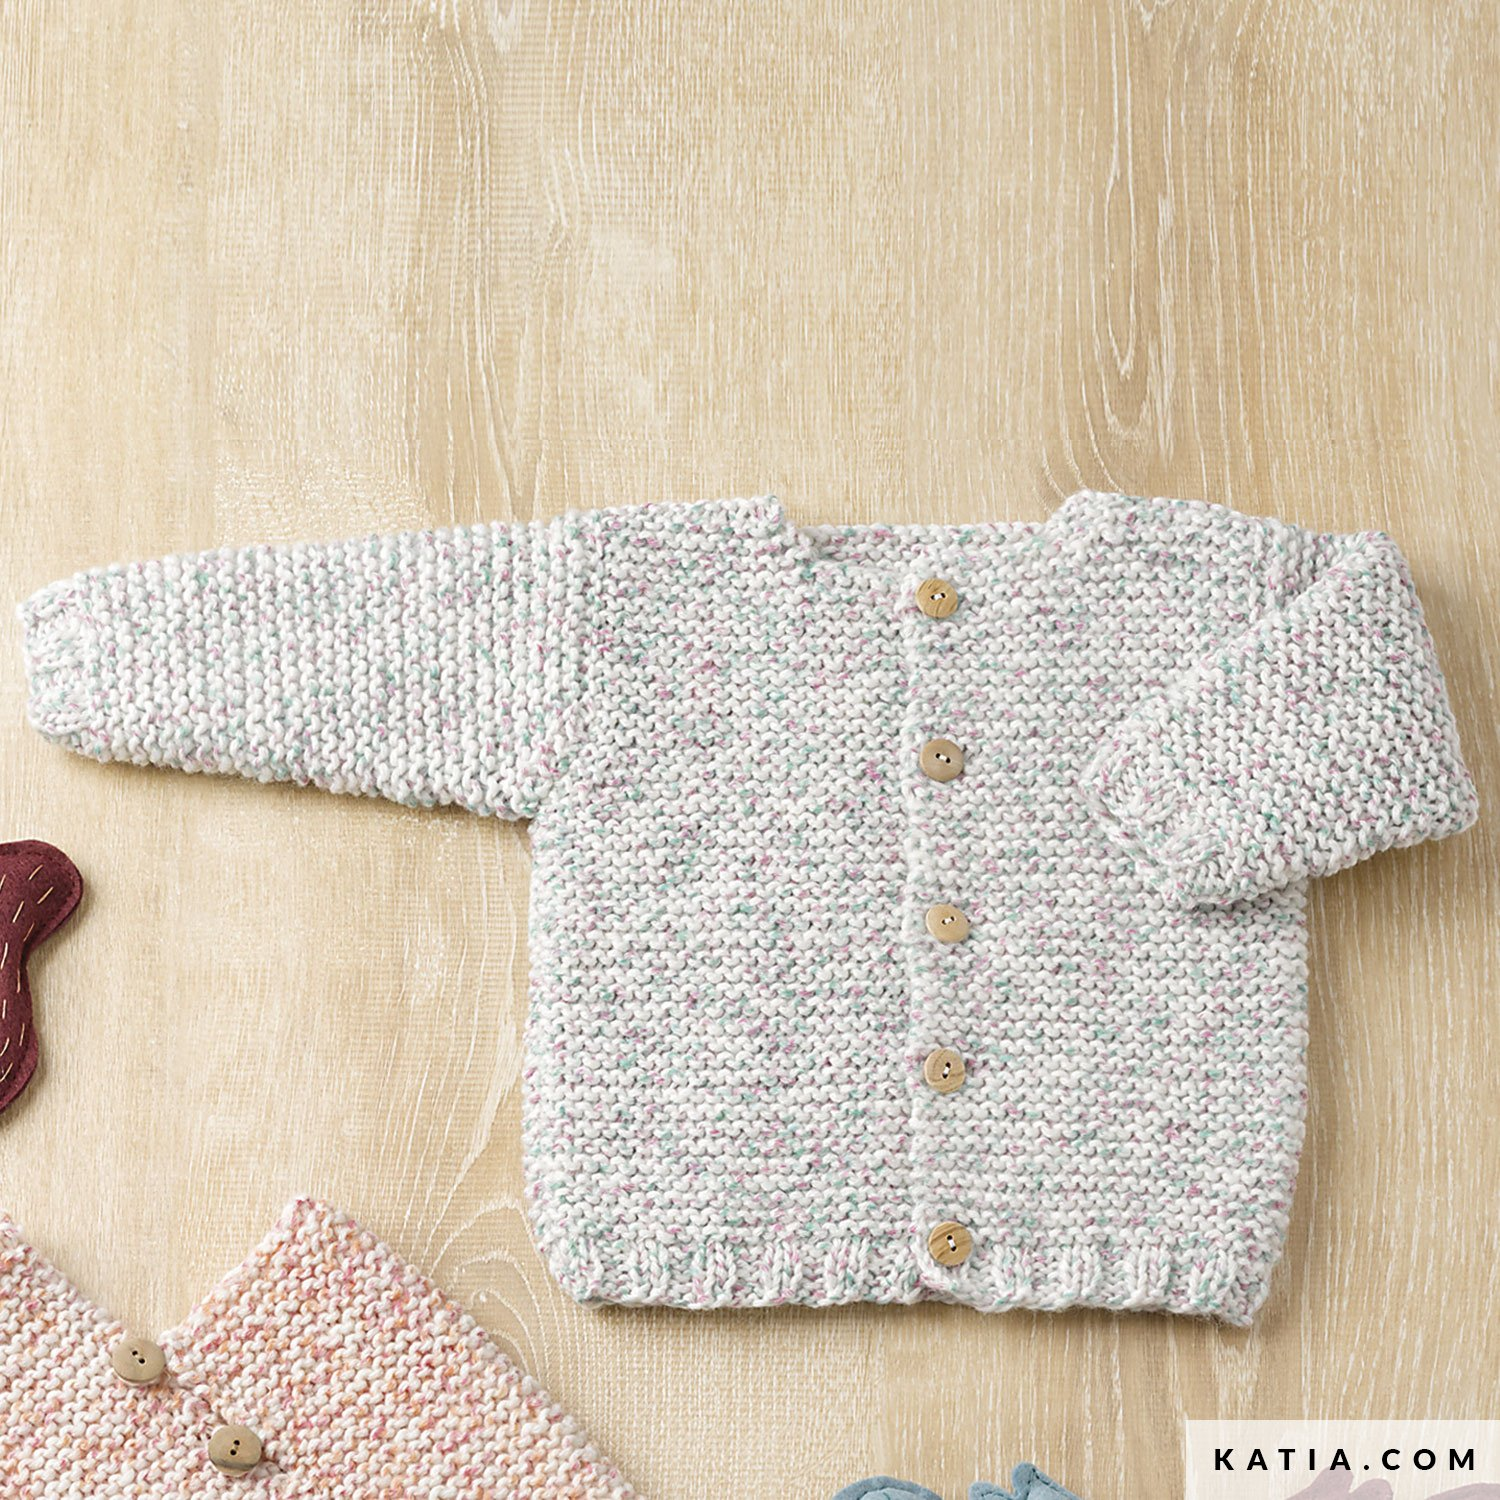 59b8b6bf726b3 pattern knit crochet baby jacket autumn winter katia 6090 23 g